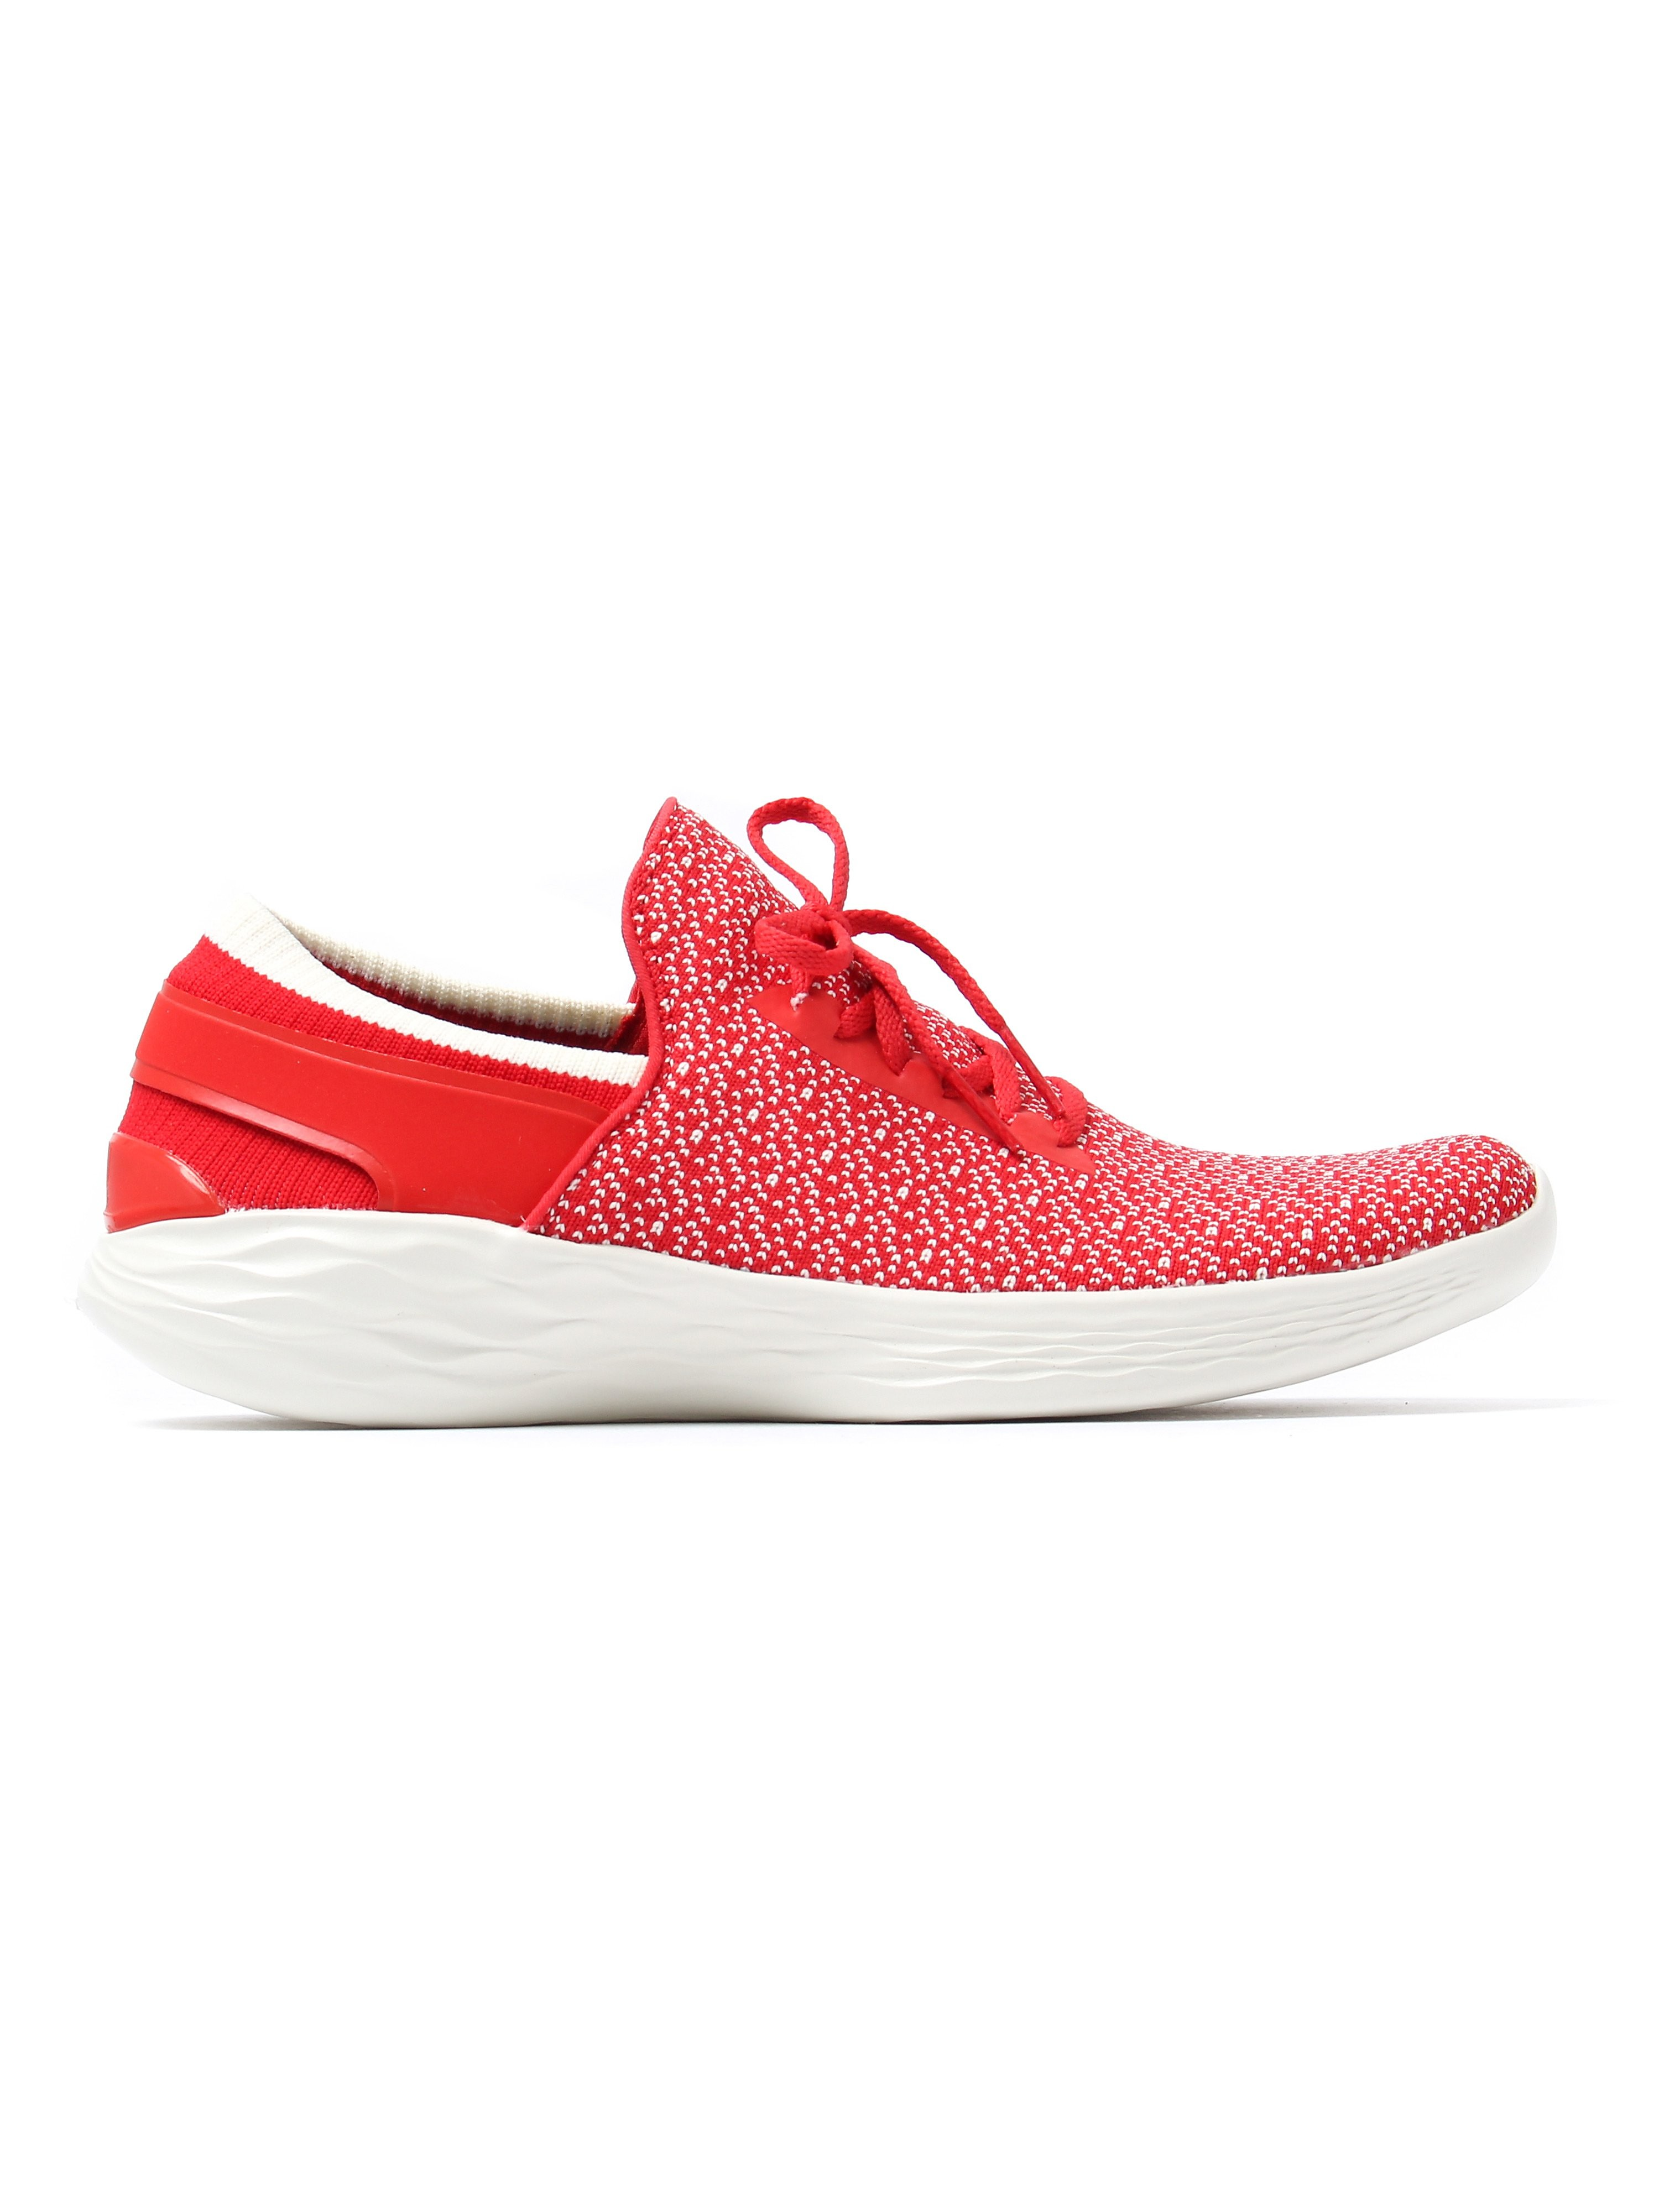 Skechers Women's You Inspire Trainers - Red